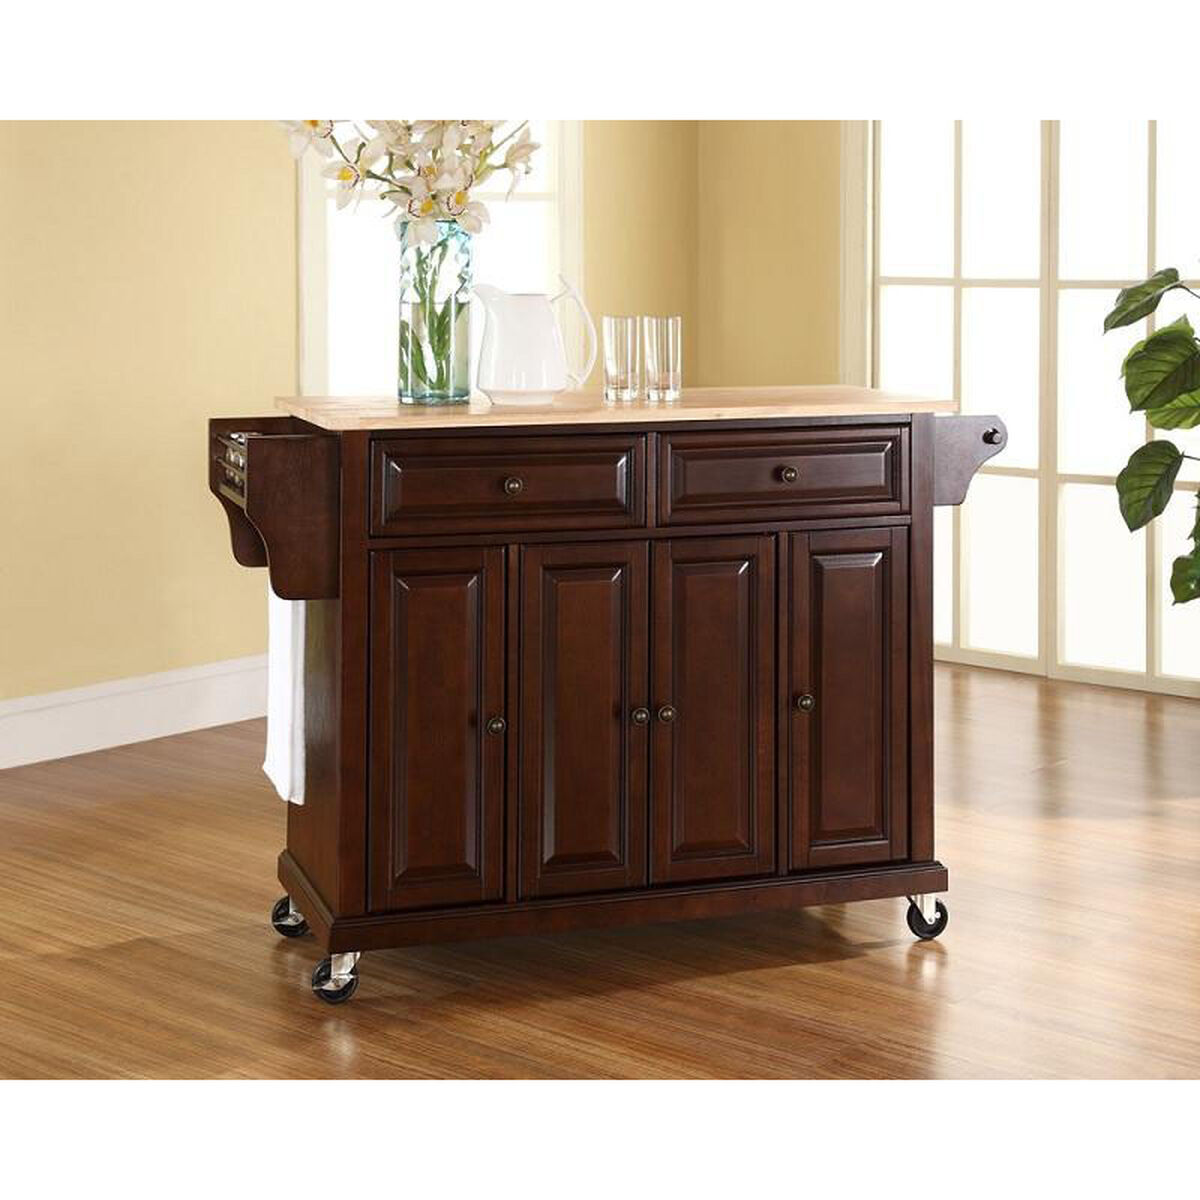 Our natural wood top kitchen island cart with cabinets vintage mahogany finish is on sale